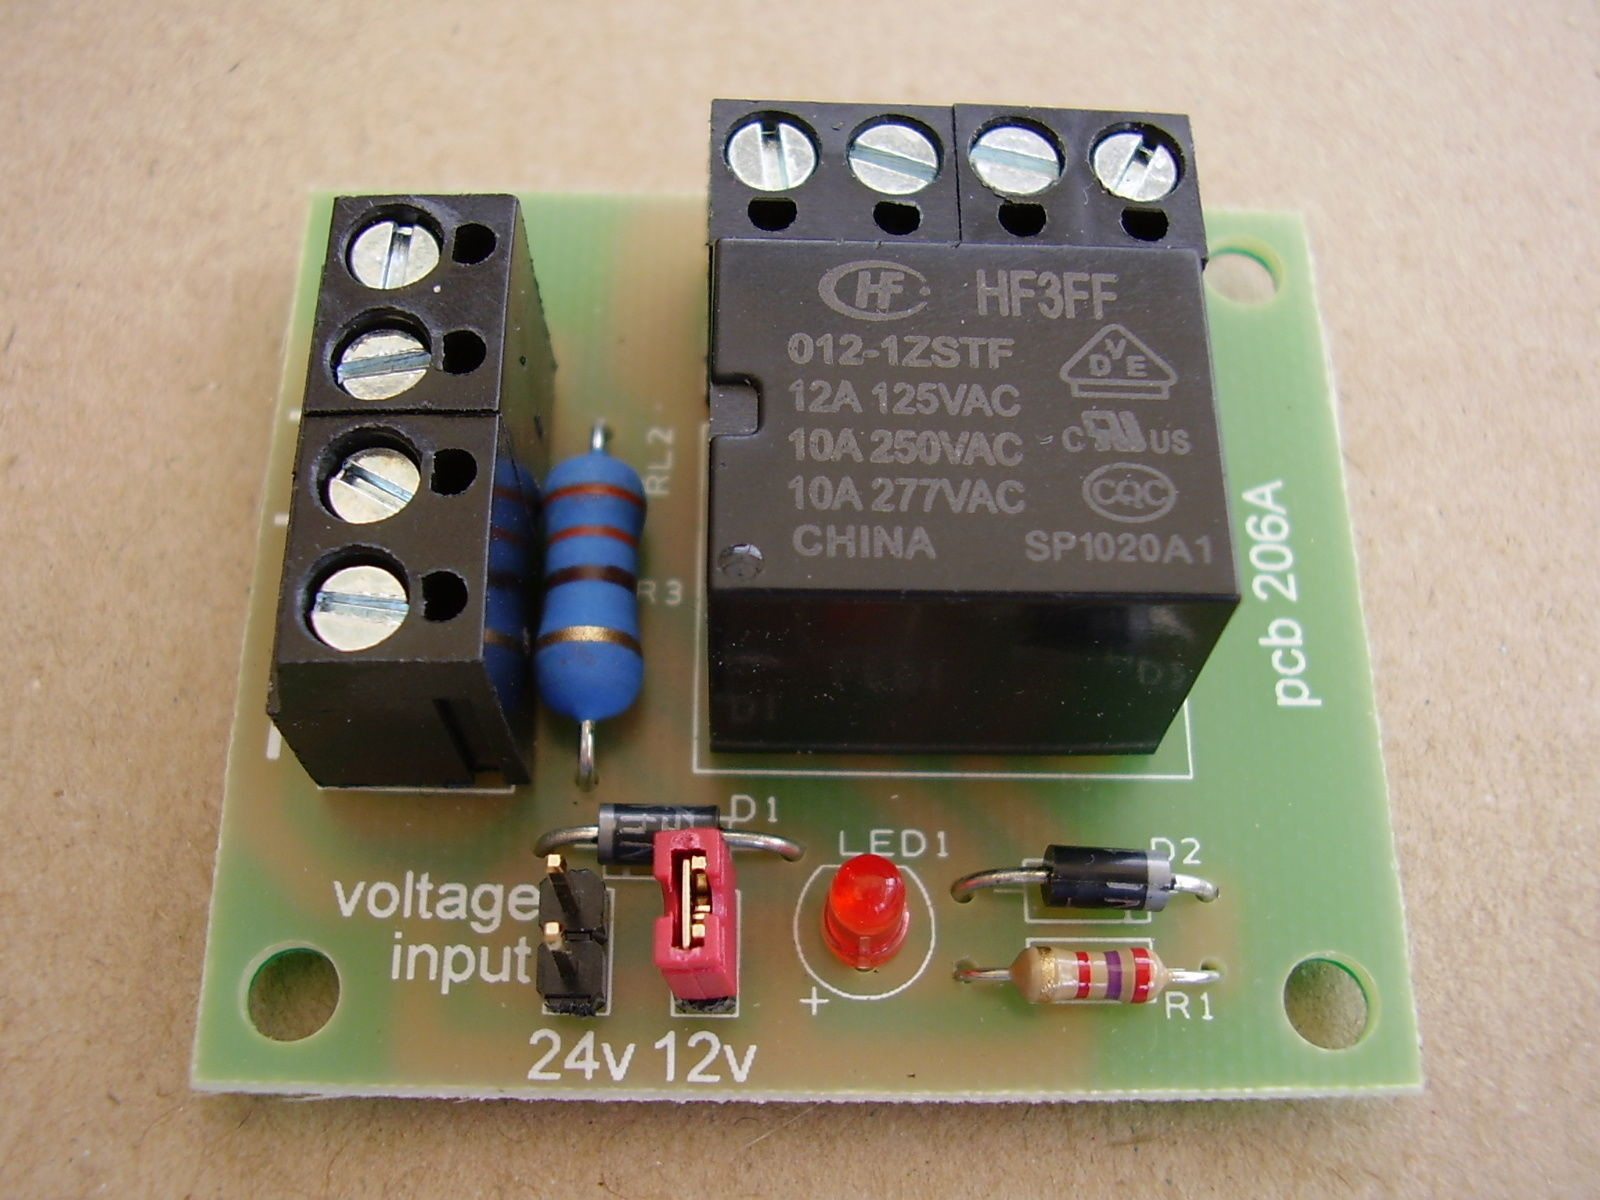 Handy Little Mini relay Board, 12vdc or 24vdc operation